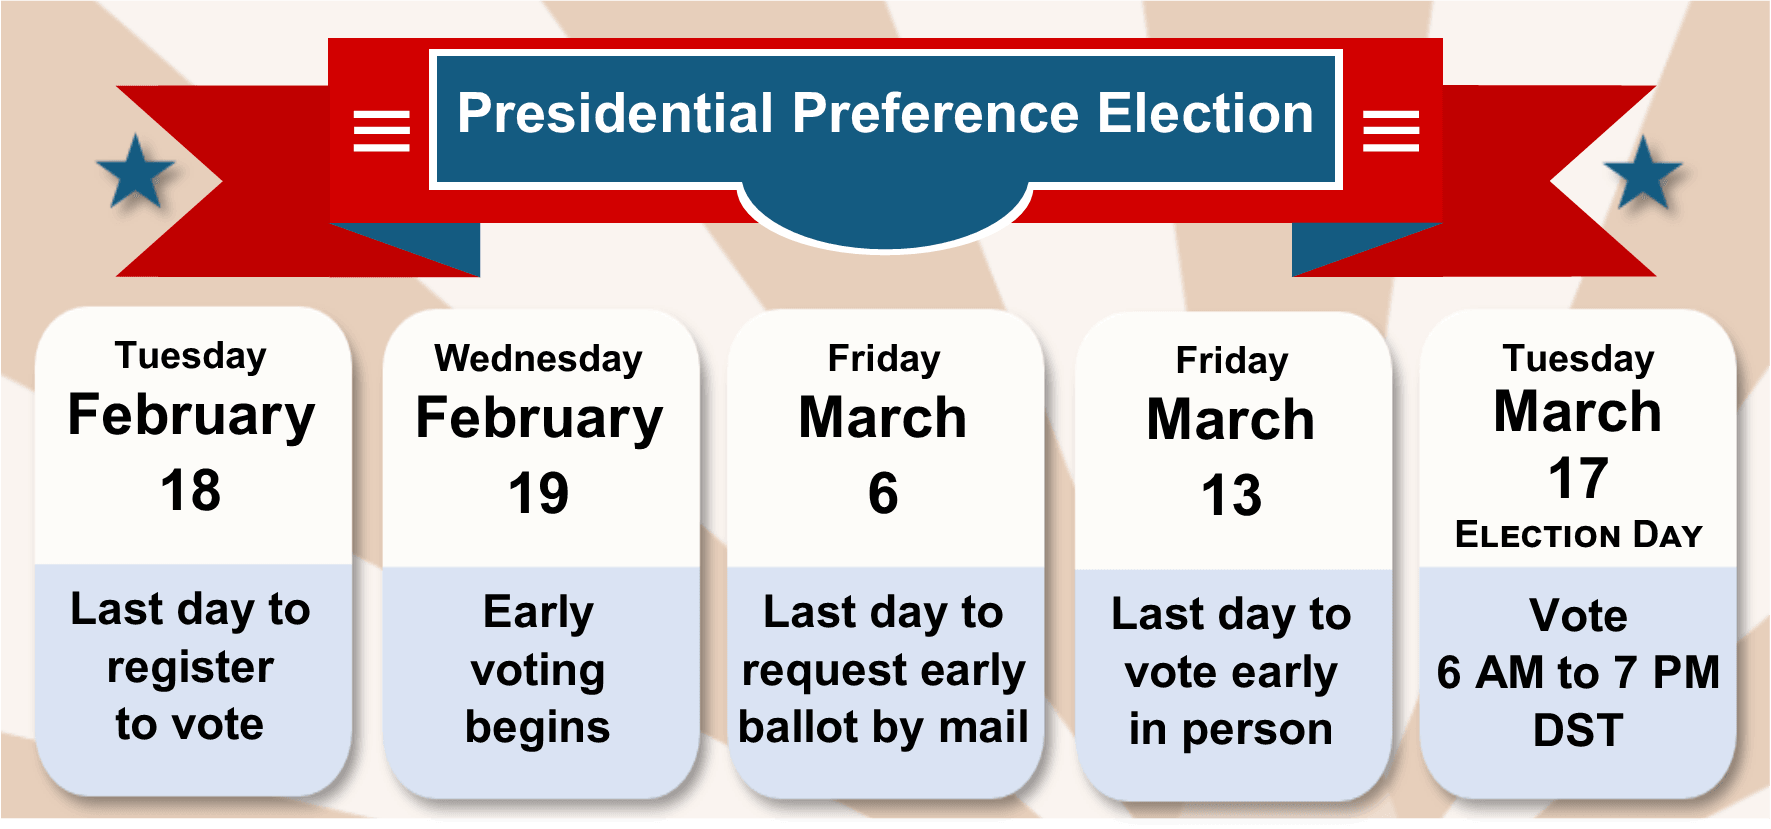 Calendar of important dates leading up to the 2020 Presidential Preference Election